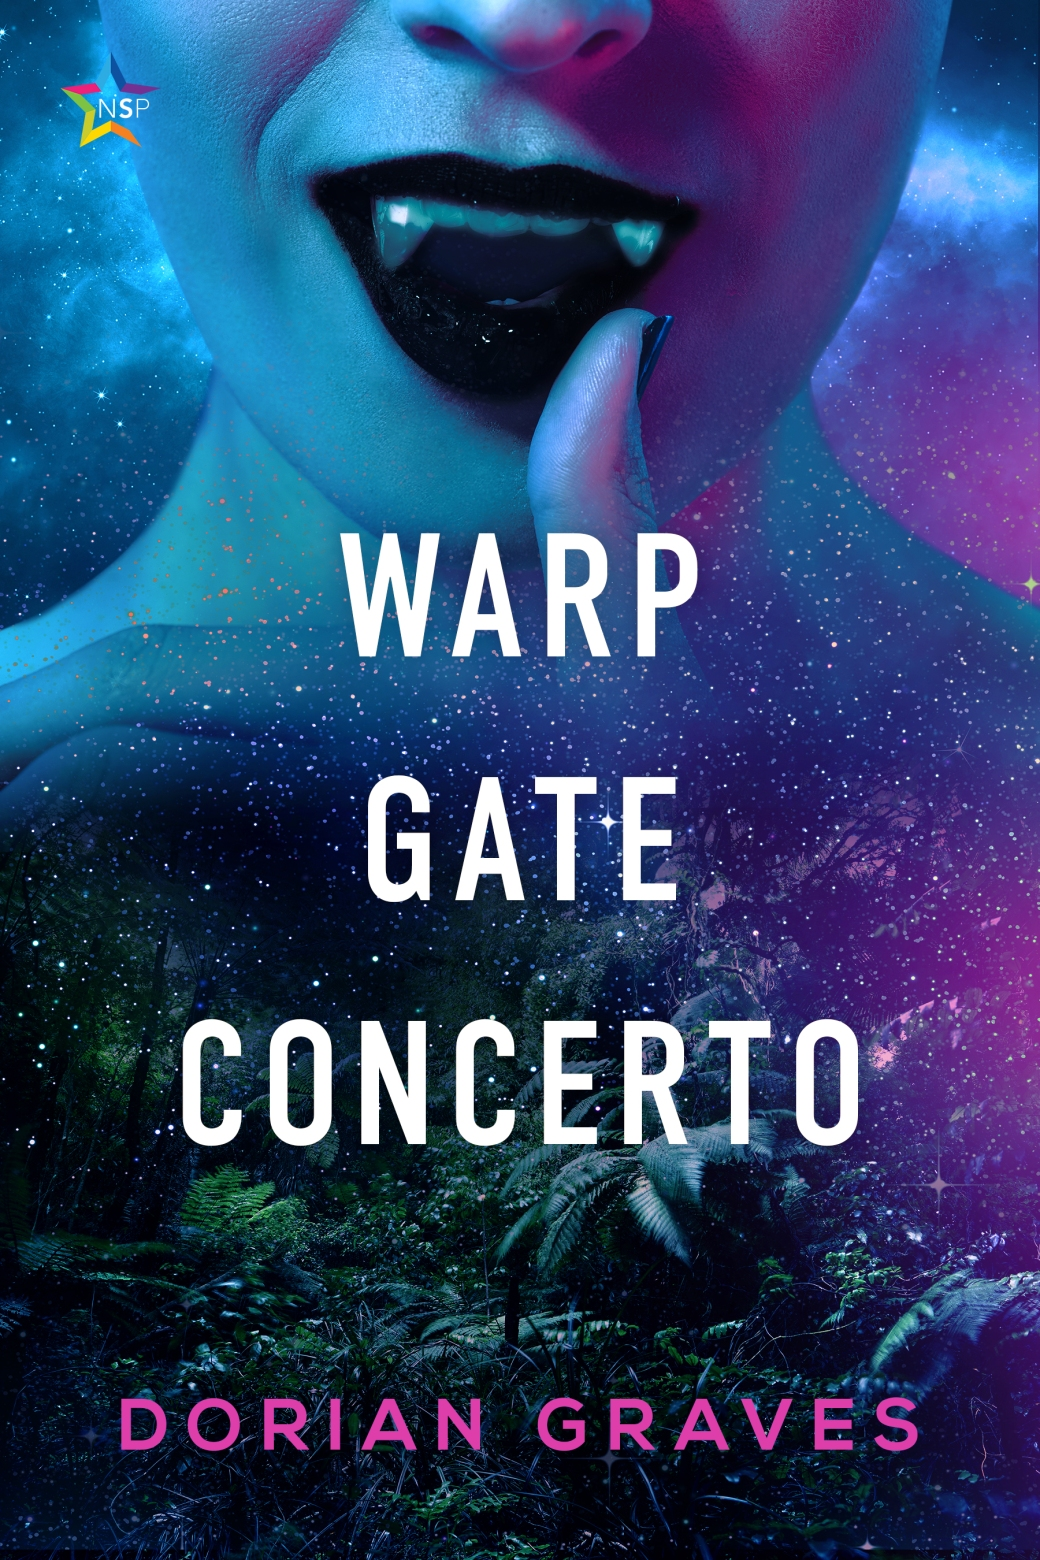 Cover for Warp Gate Concerto by Dorian Graves; art by Natasha Snow.